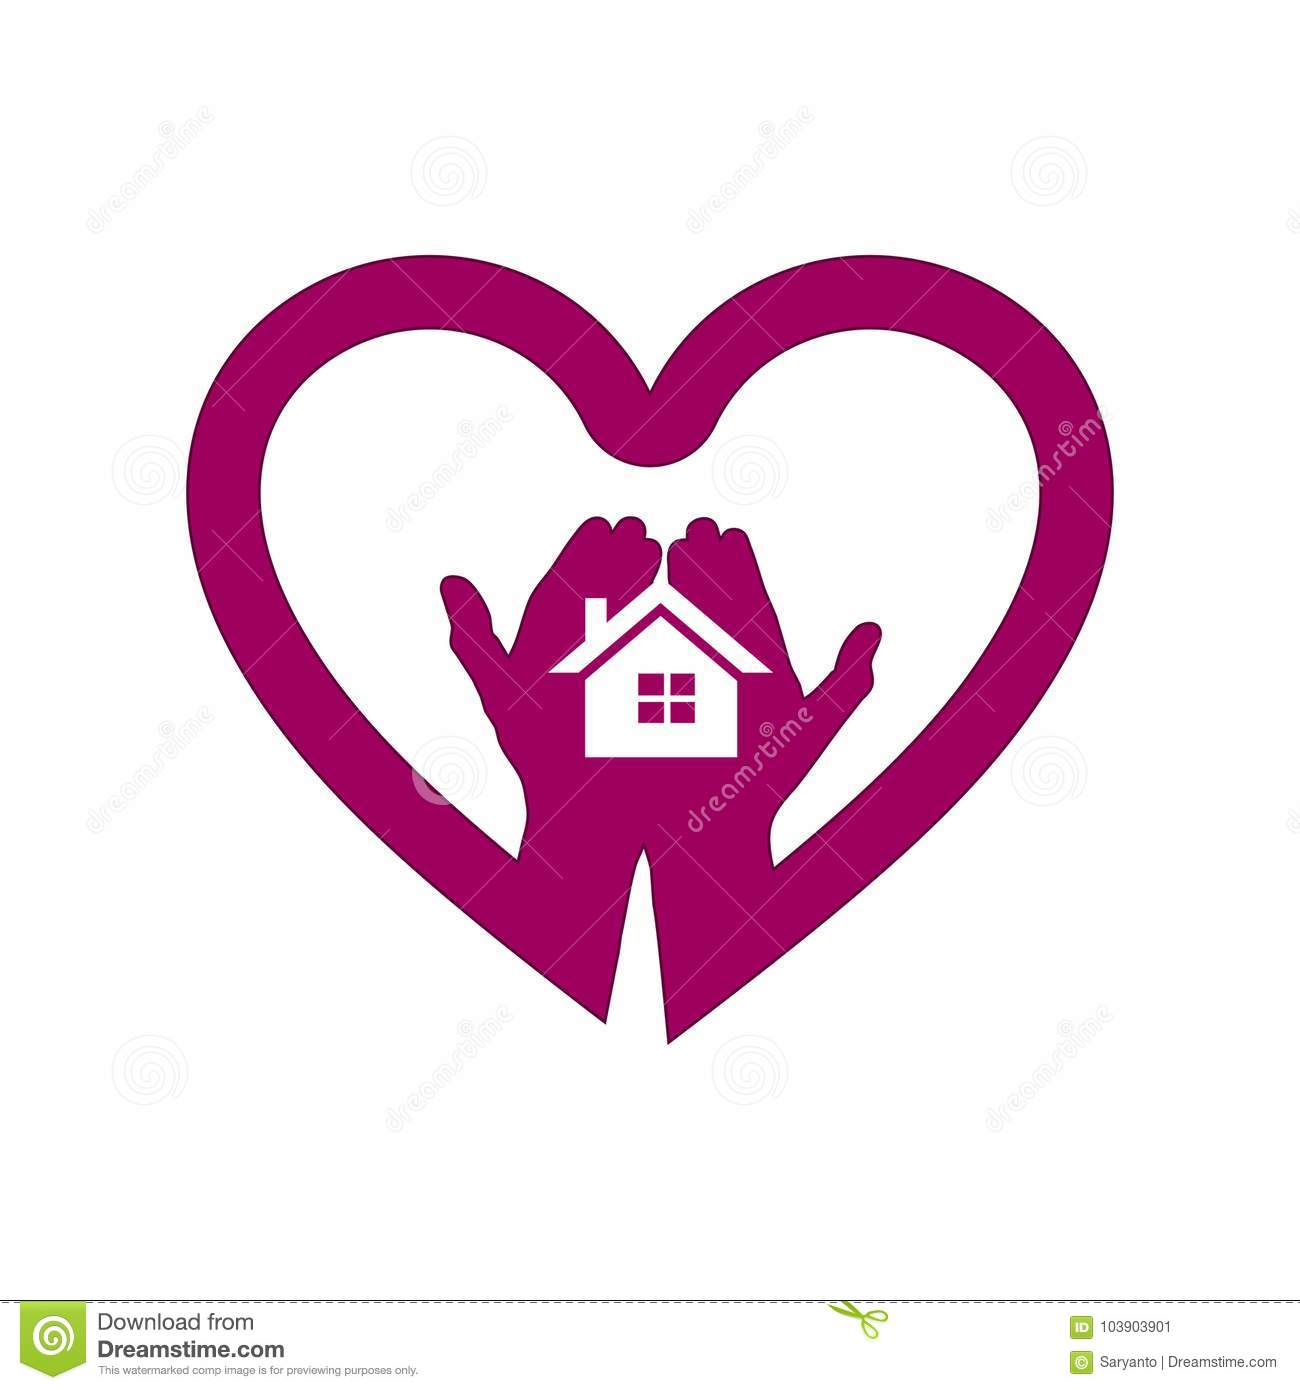 Hand With House In Heart Icon Logo Stock Vector - Illustration of ...